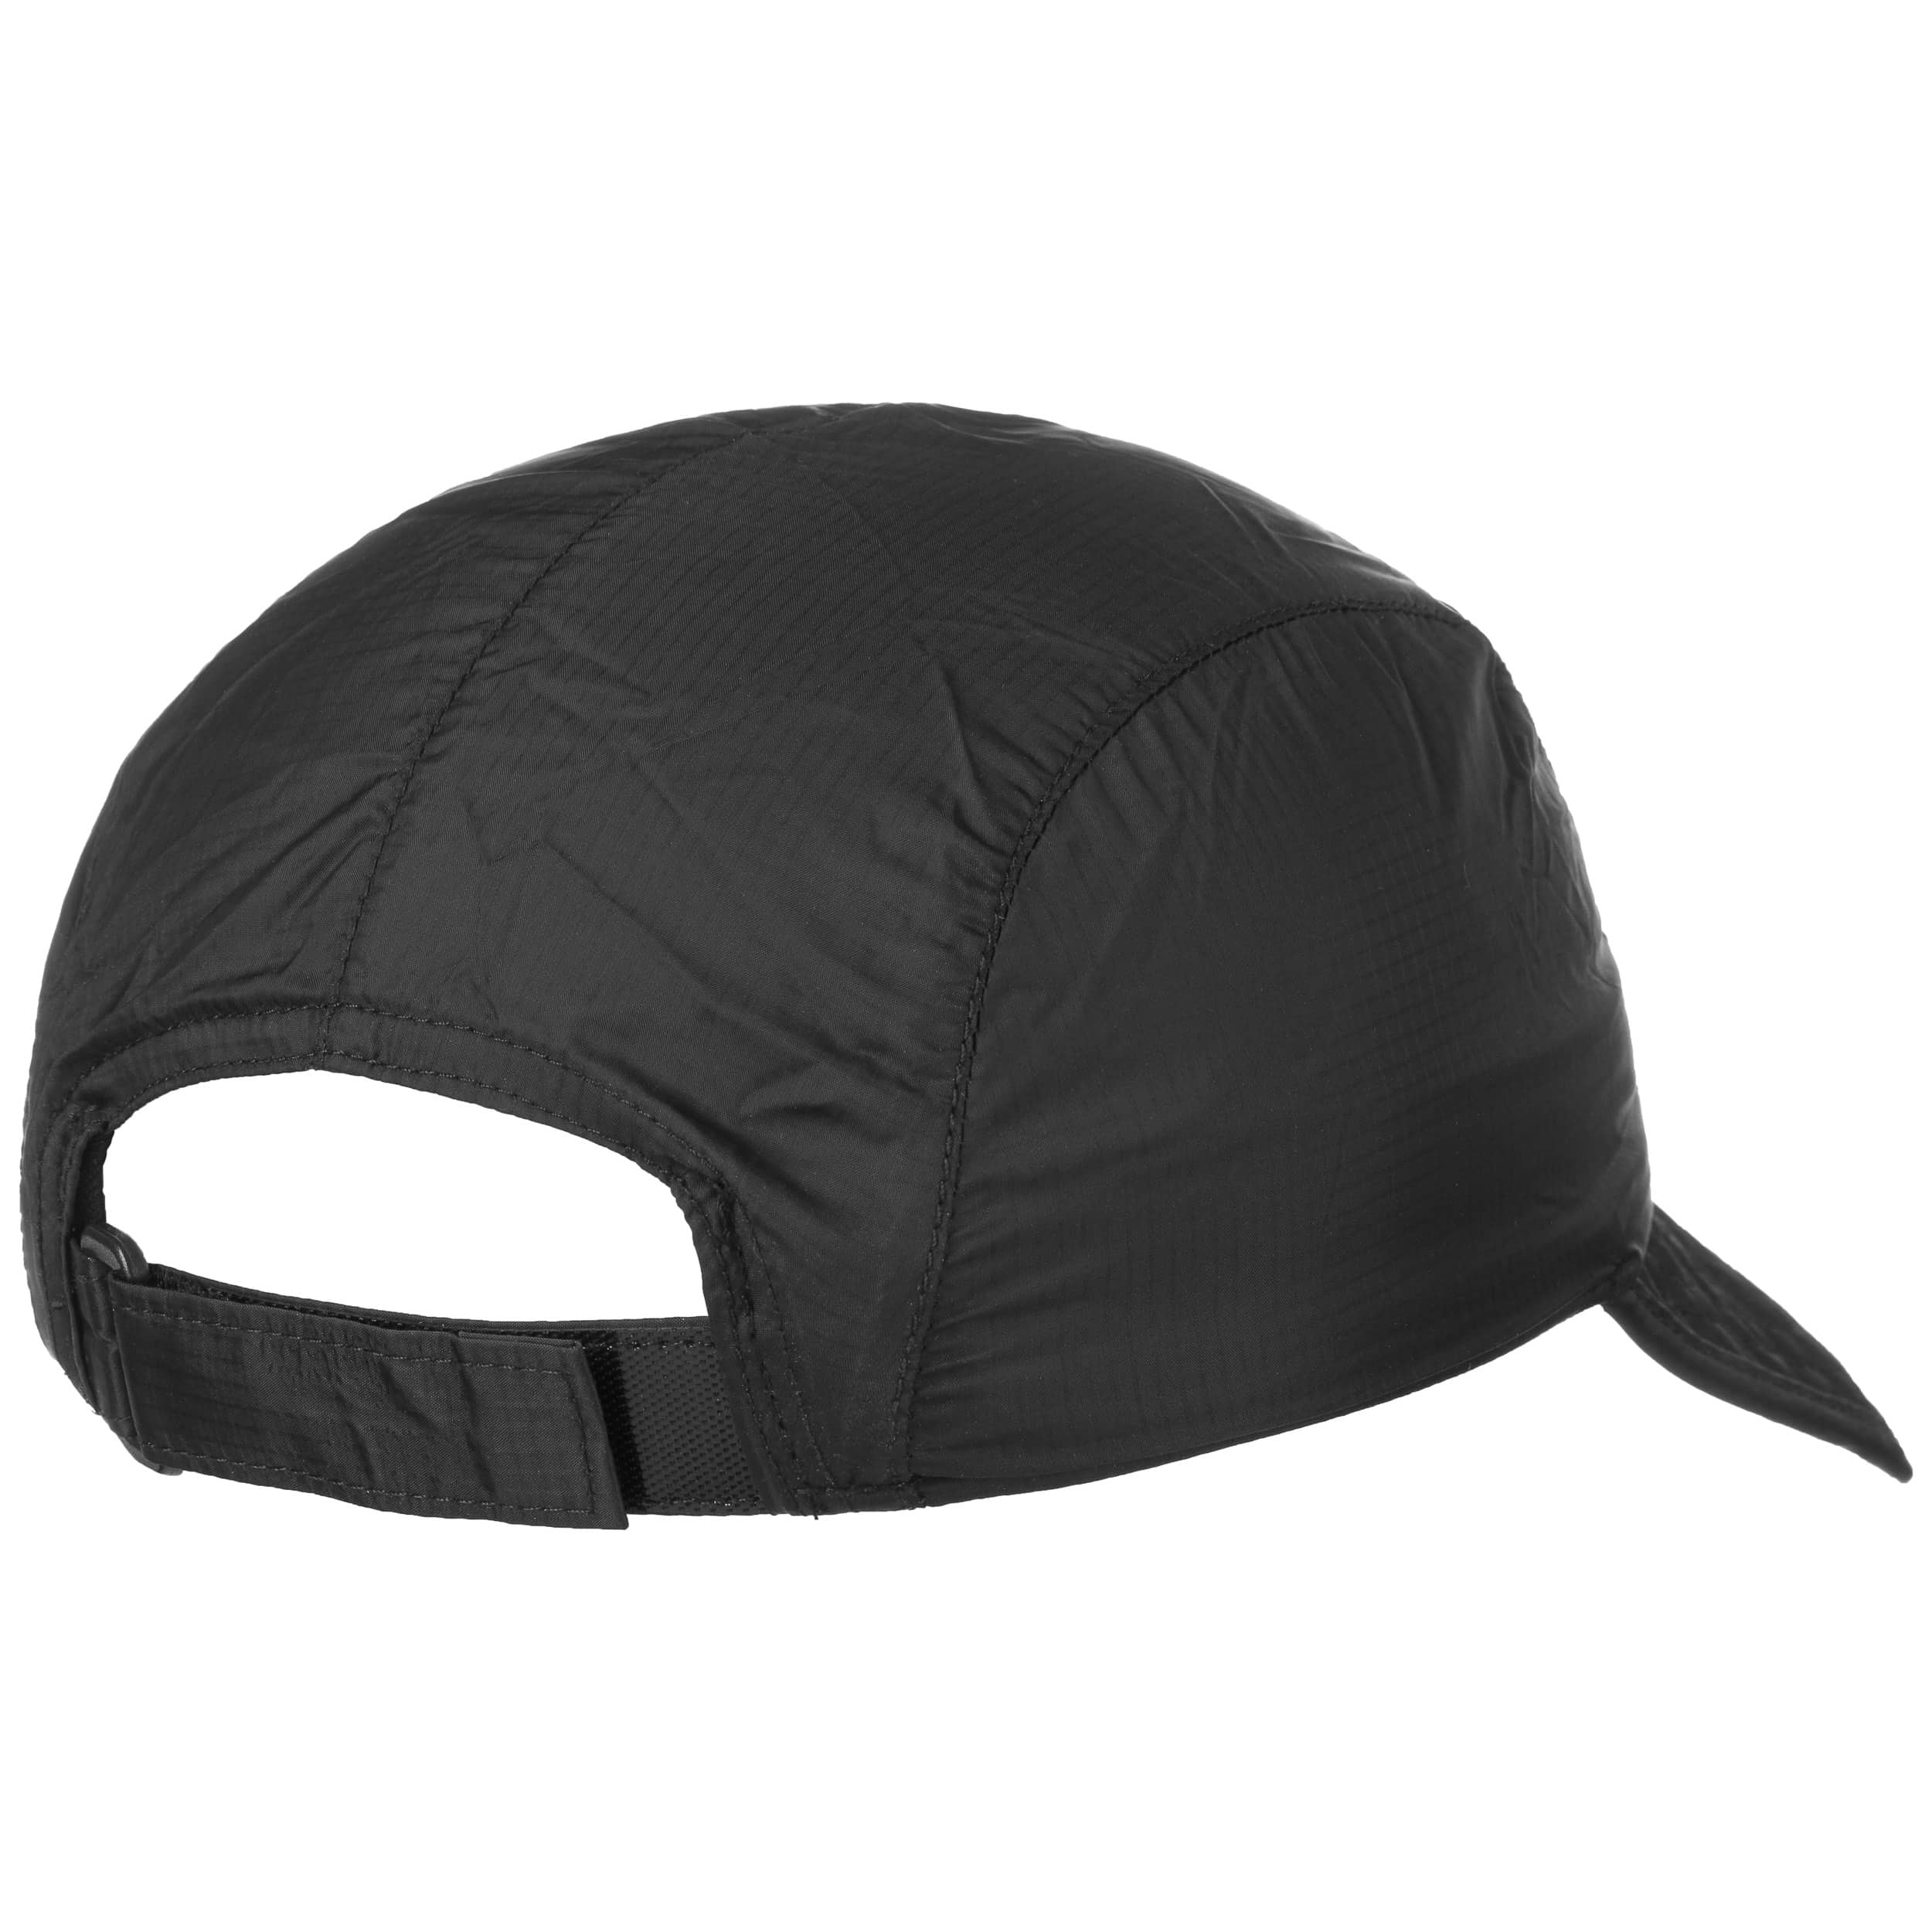 premium selection 33fff 3eeca ... Packable Running Performance Cap by PUMA - black 3 ...